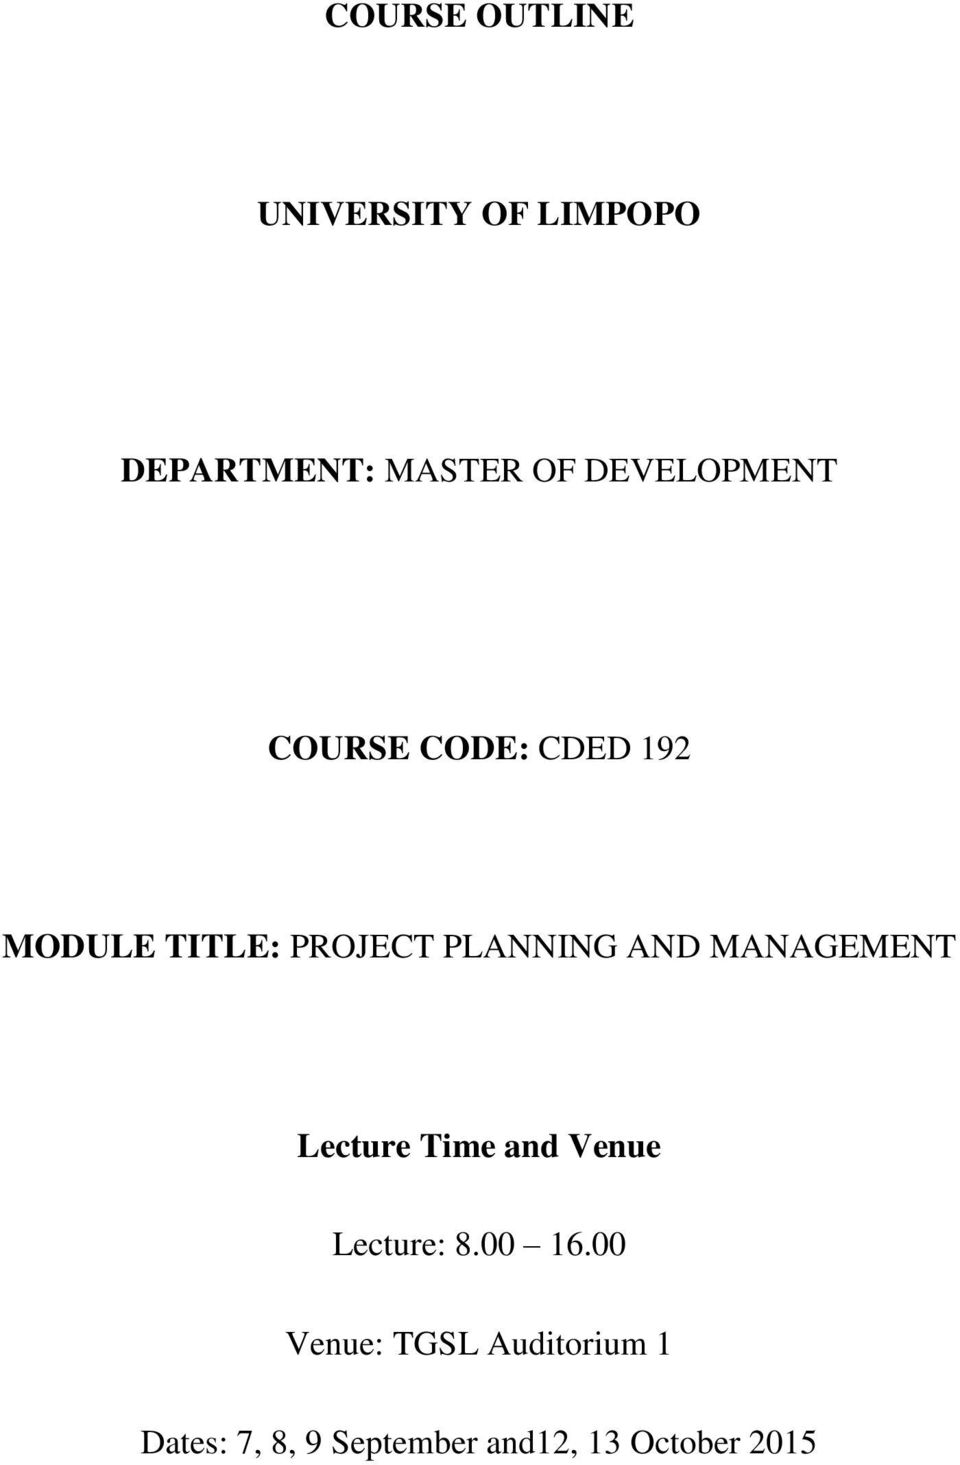 COURSE OUTLINE UNIVERSITY OF LIMPOPO DEPARTMENT: MASTER OF